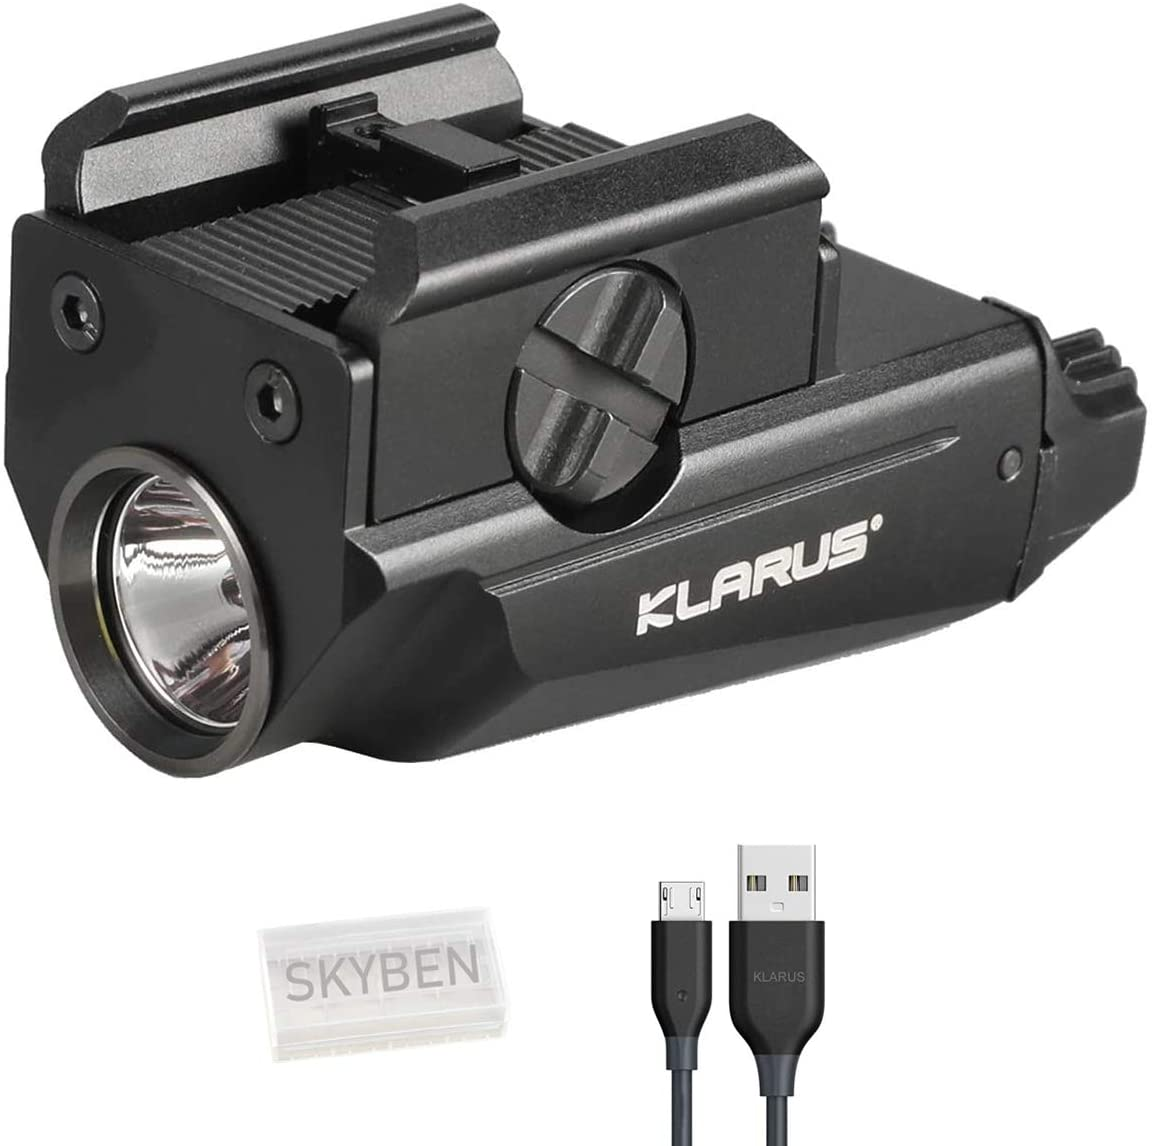 Tidusky Klarus GL1 Pistol Light 600 lumens CREE XP-L2 HD LED Rechargeable Military Tactical Rail Mounted Flashlight Waterproof IPX6 with Skyben Battery Case